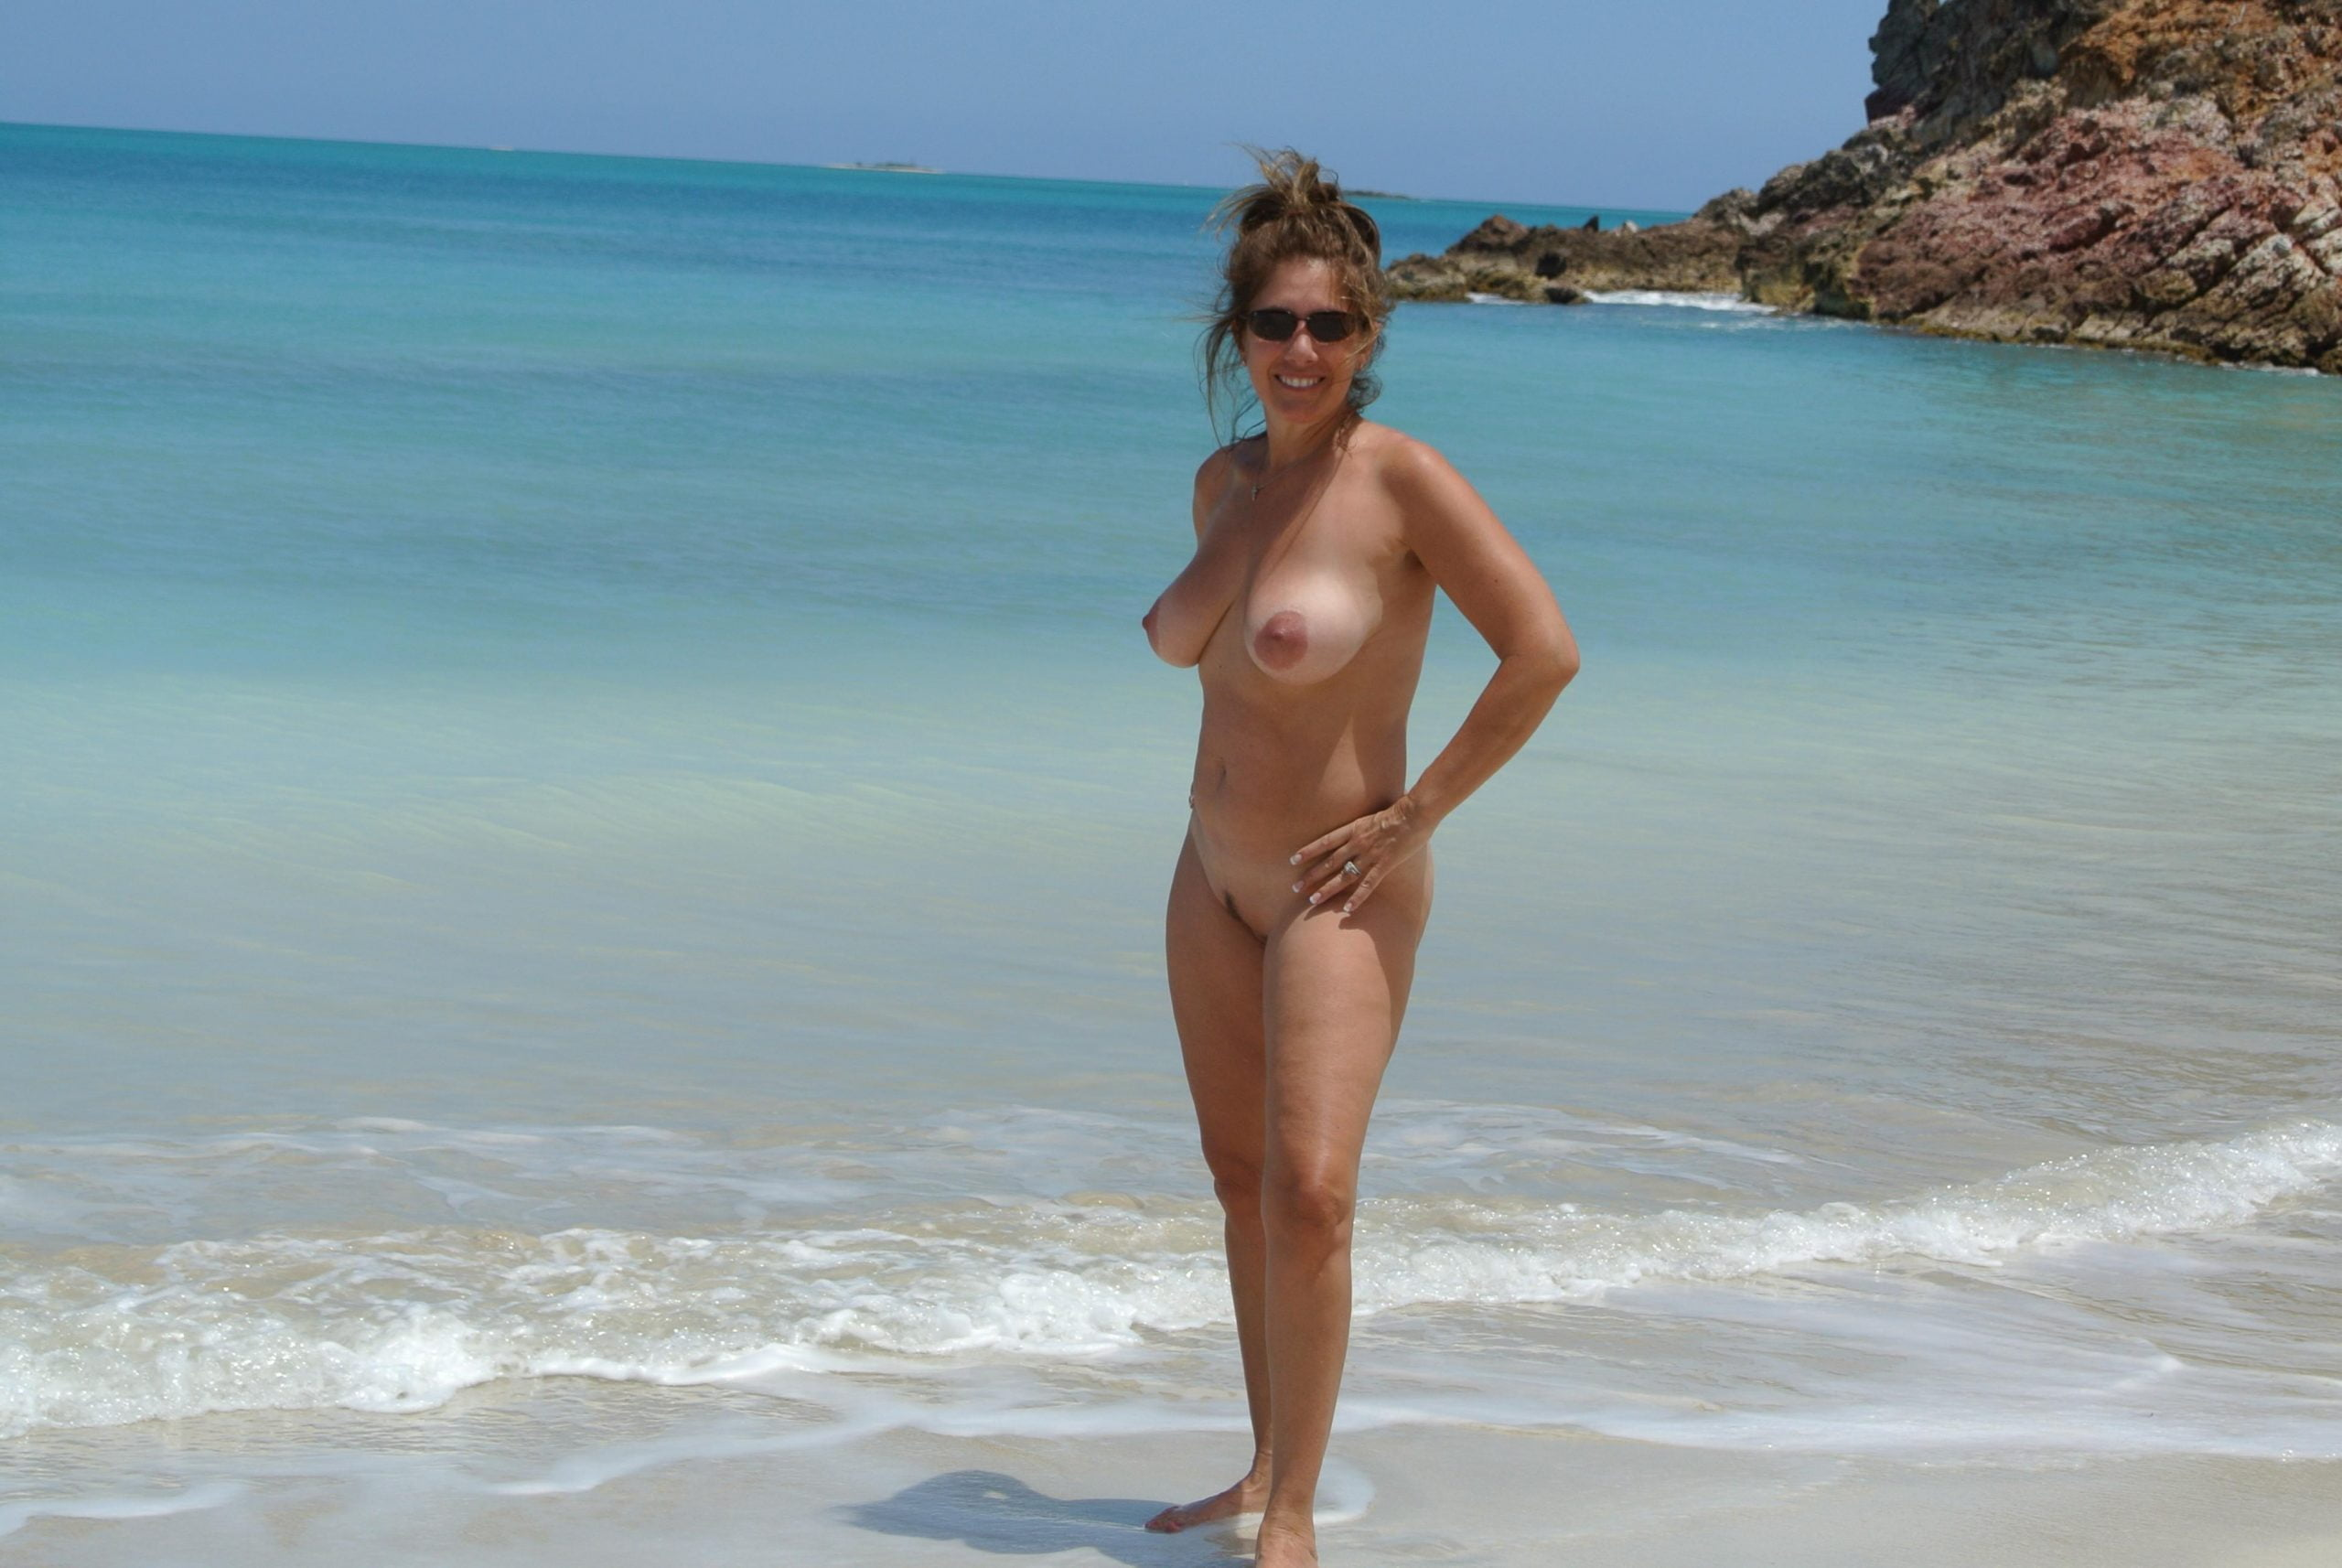 Busty MILF displays her great body while totally naked by the sea. Pretty wife demonstrates nice tits and pussy on the beach